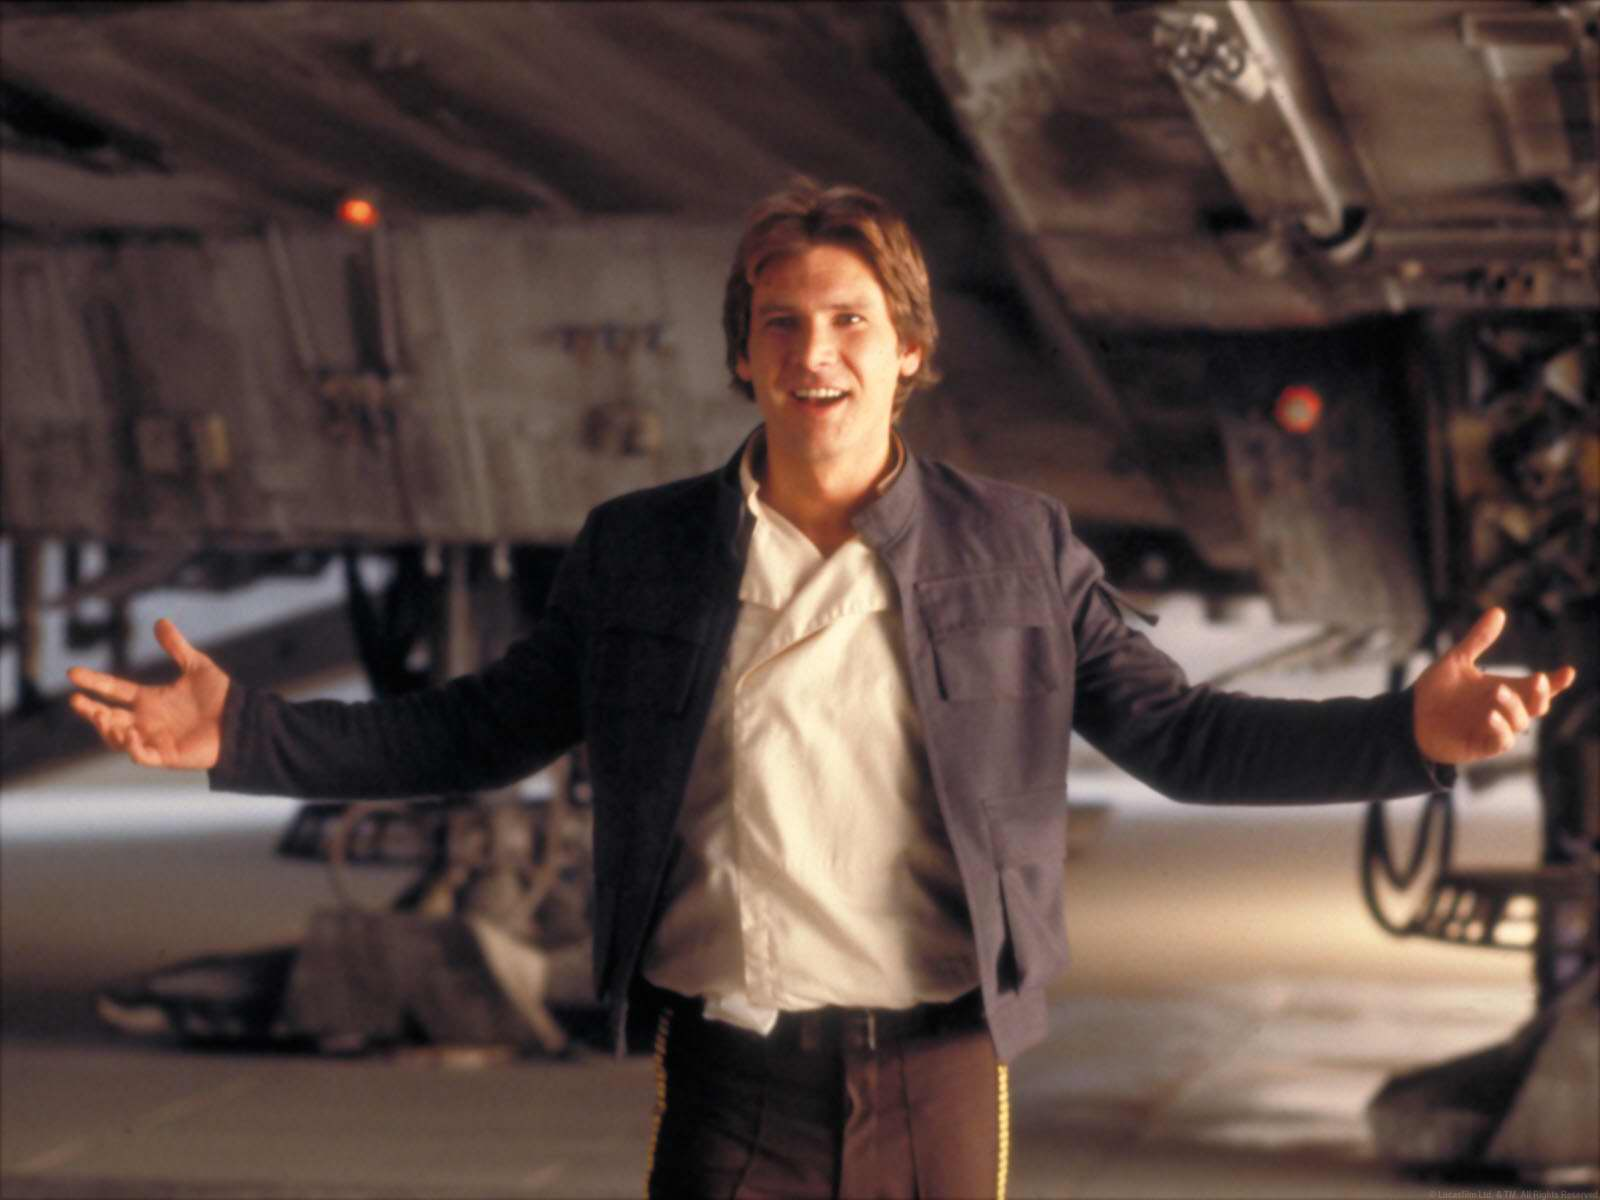 Ron Howard is now directing the Han Solo film, and this sounds like a clear cut situation for comedy